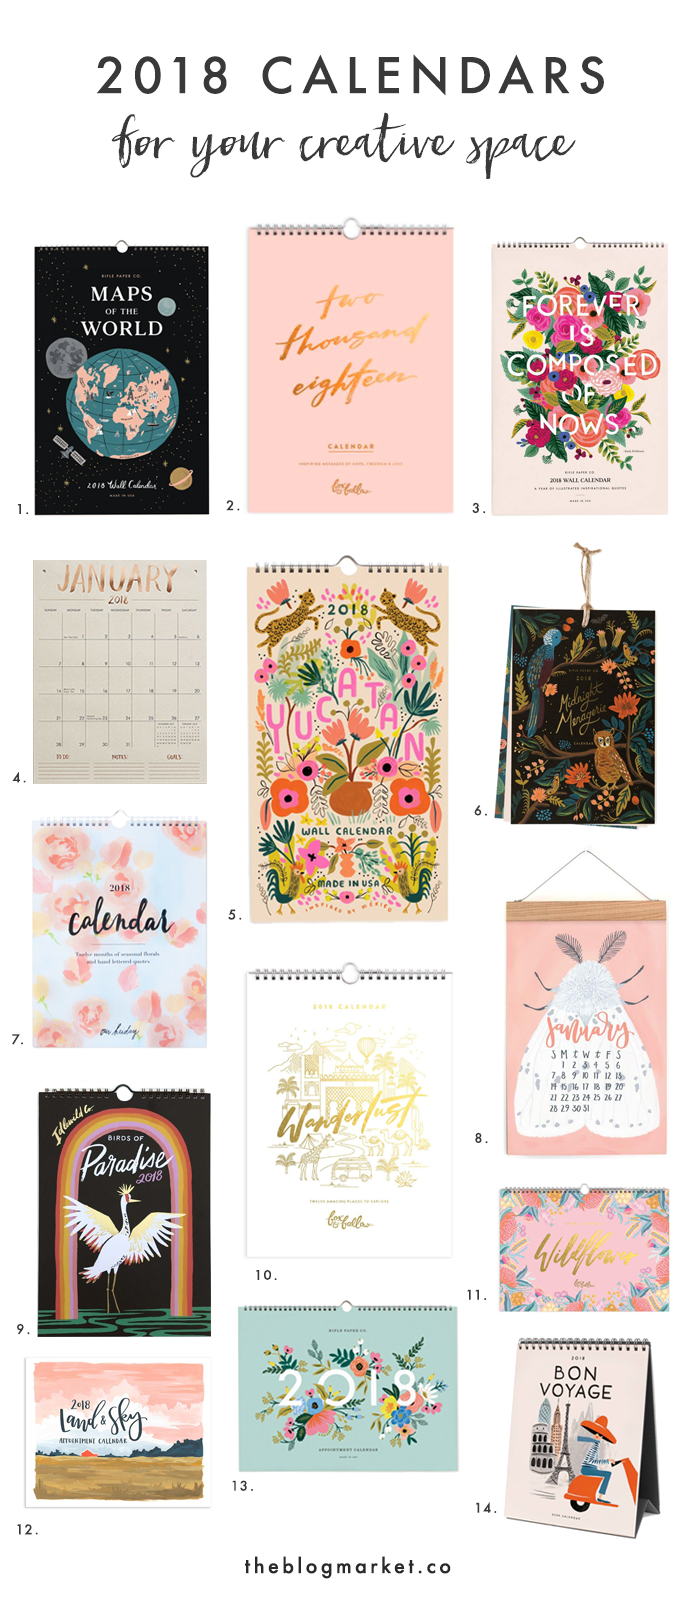 Best 2018 Calendars for your Creative Space | Creative, Spaces and